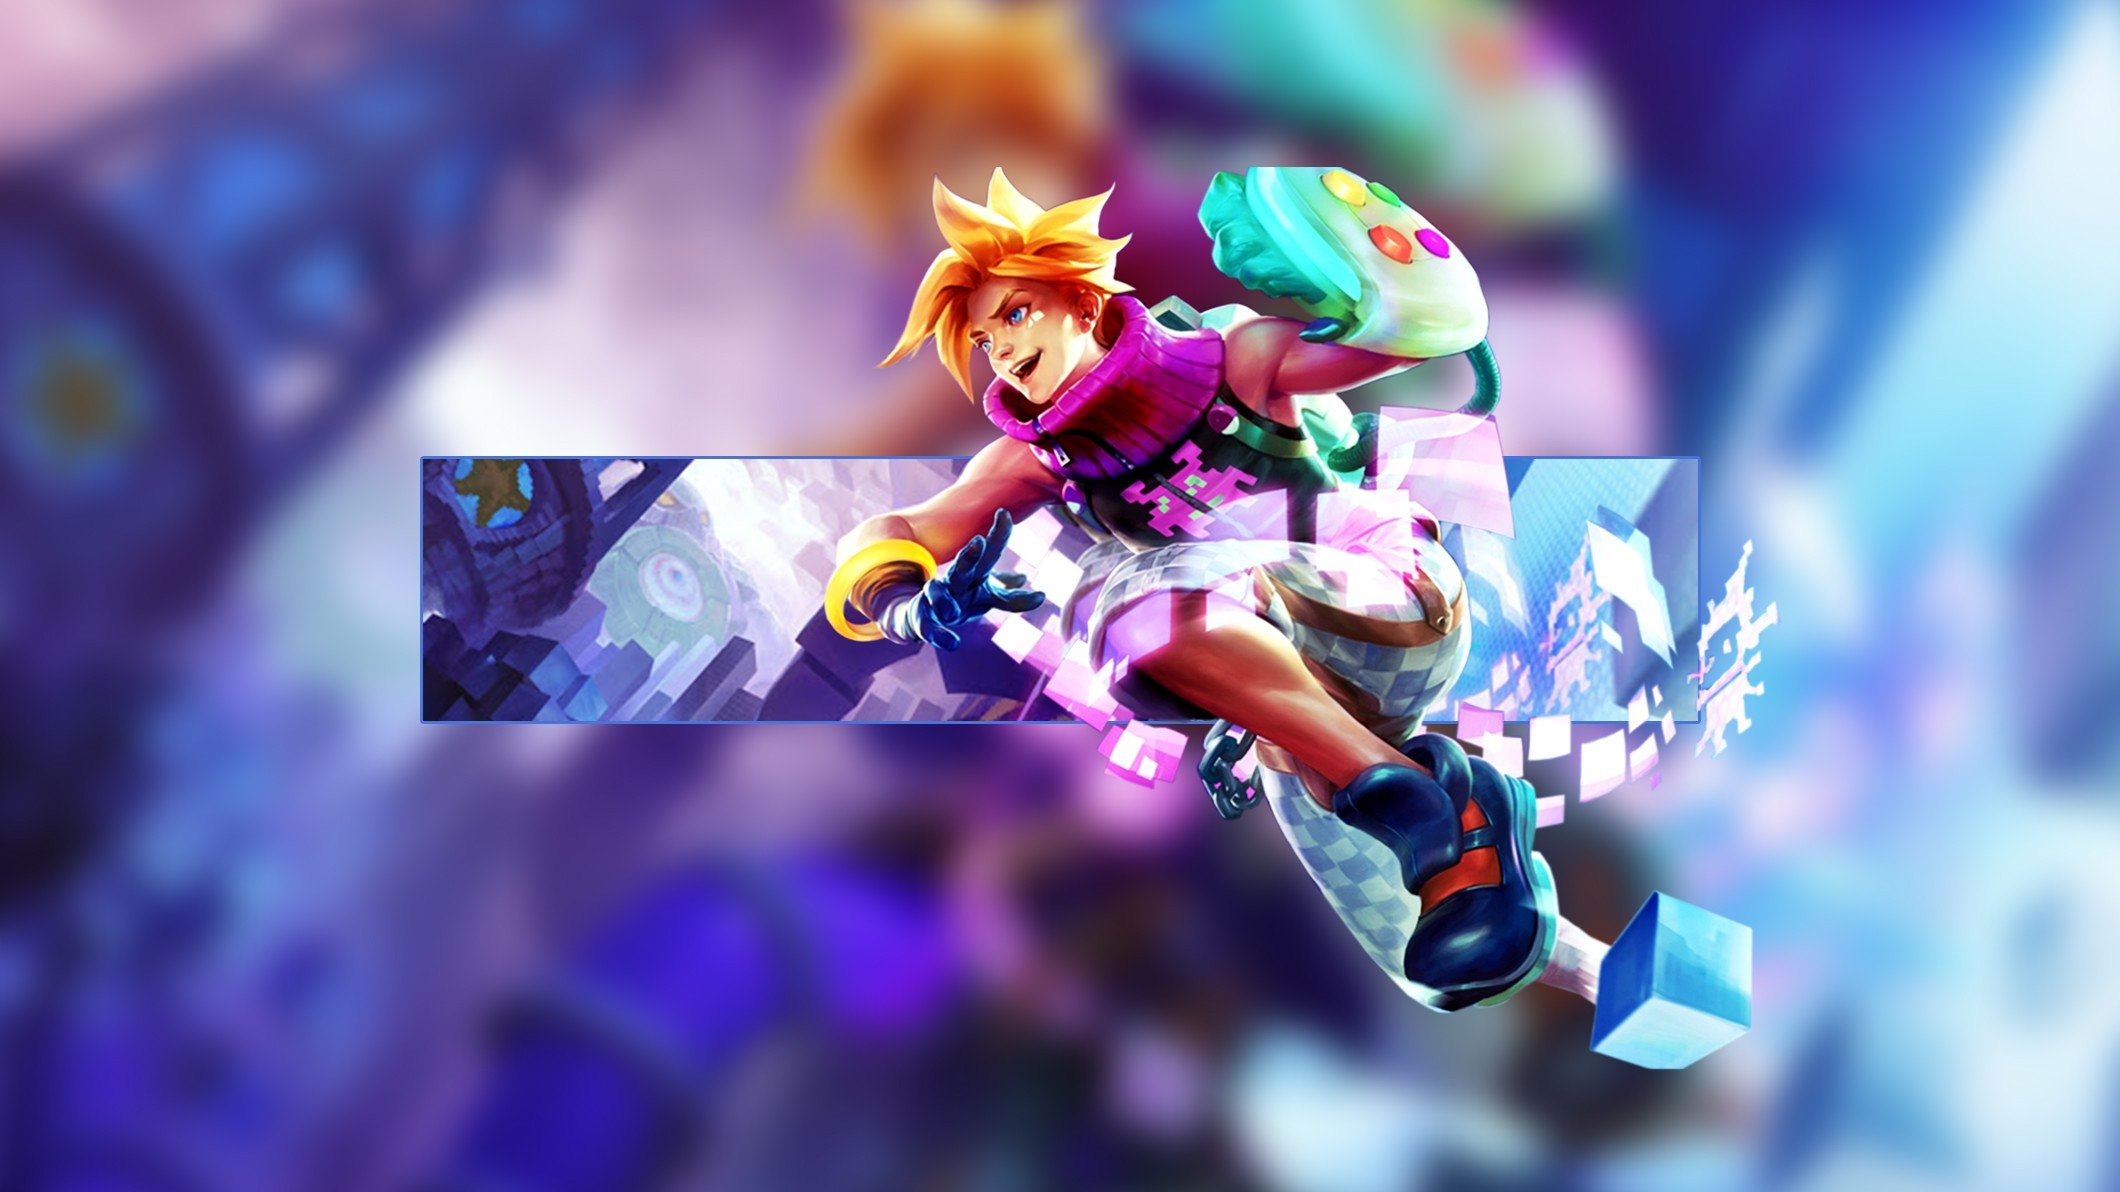 Ezreal Arcade League Of Legends Adc Marksman Hd Wallpapers